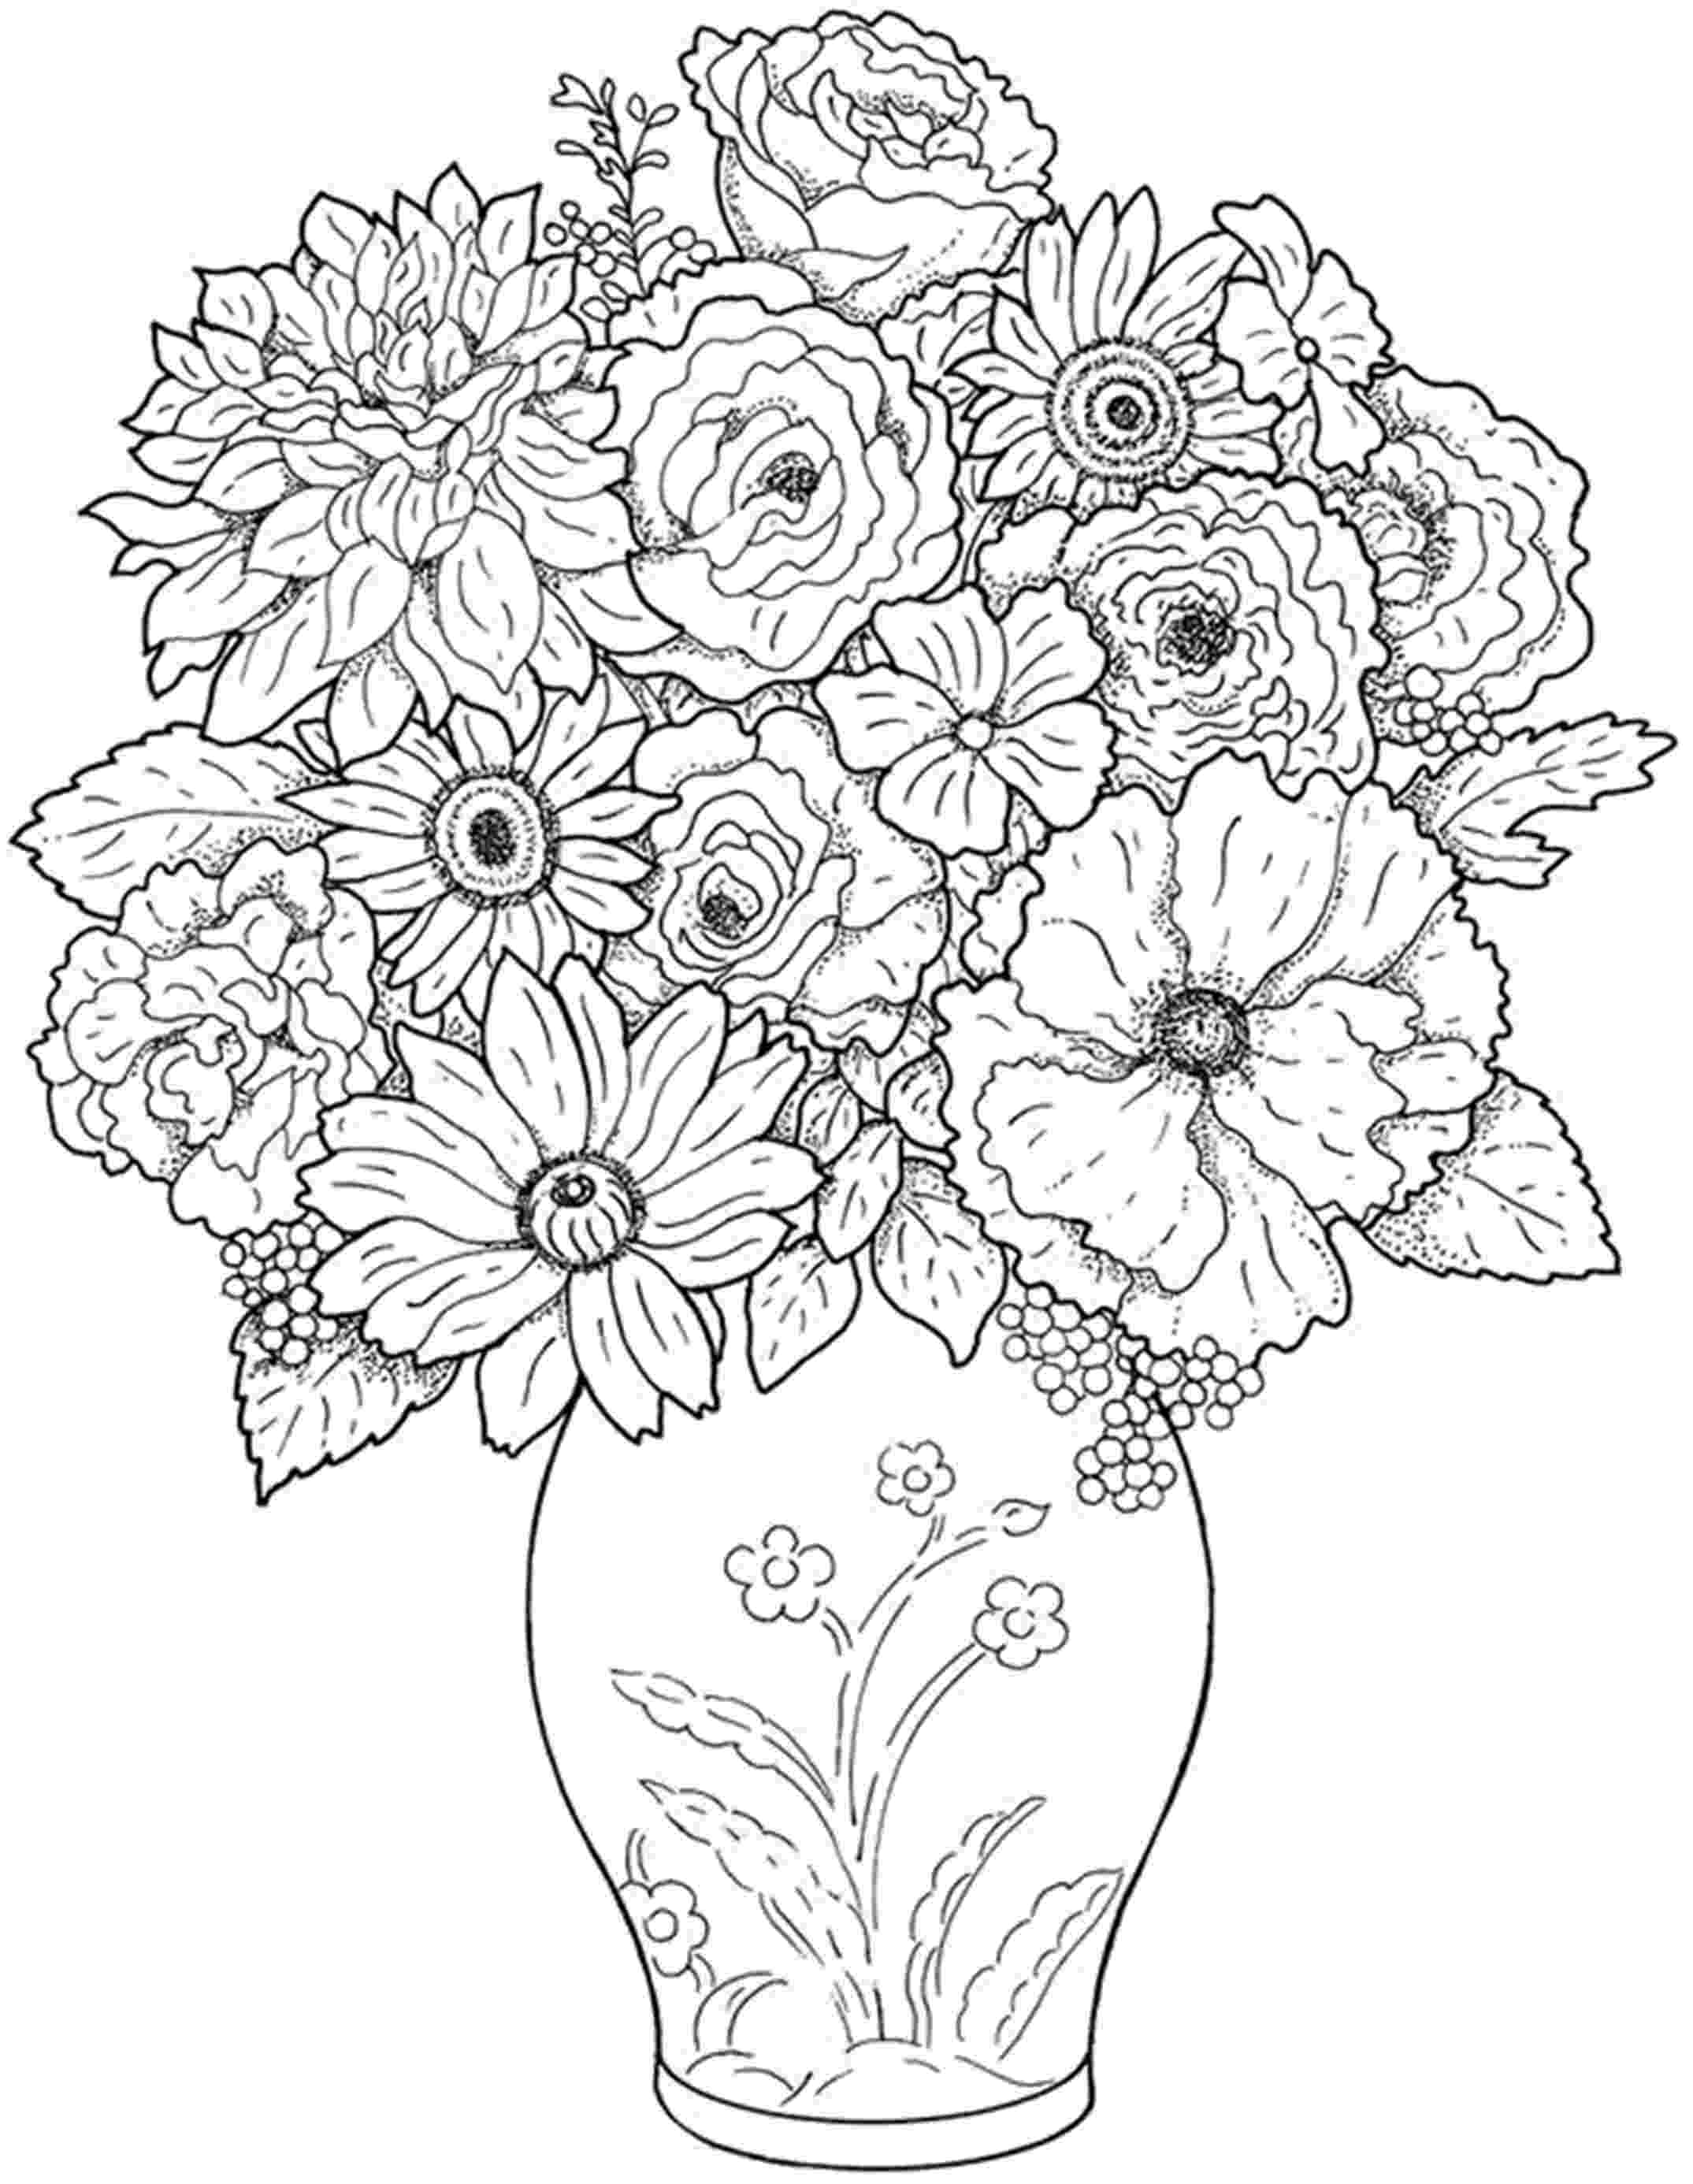 flowers colouring free printable flower coloring pages for kids best colouring flowers 1 2